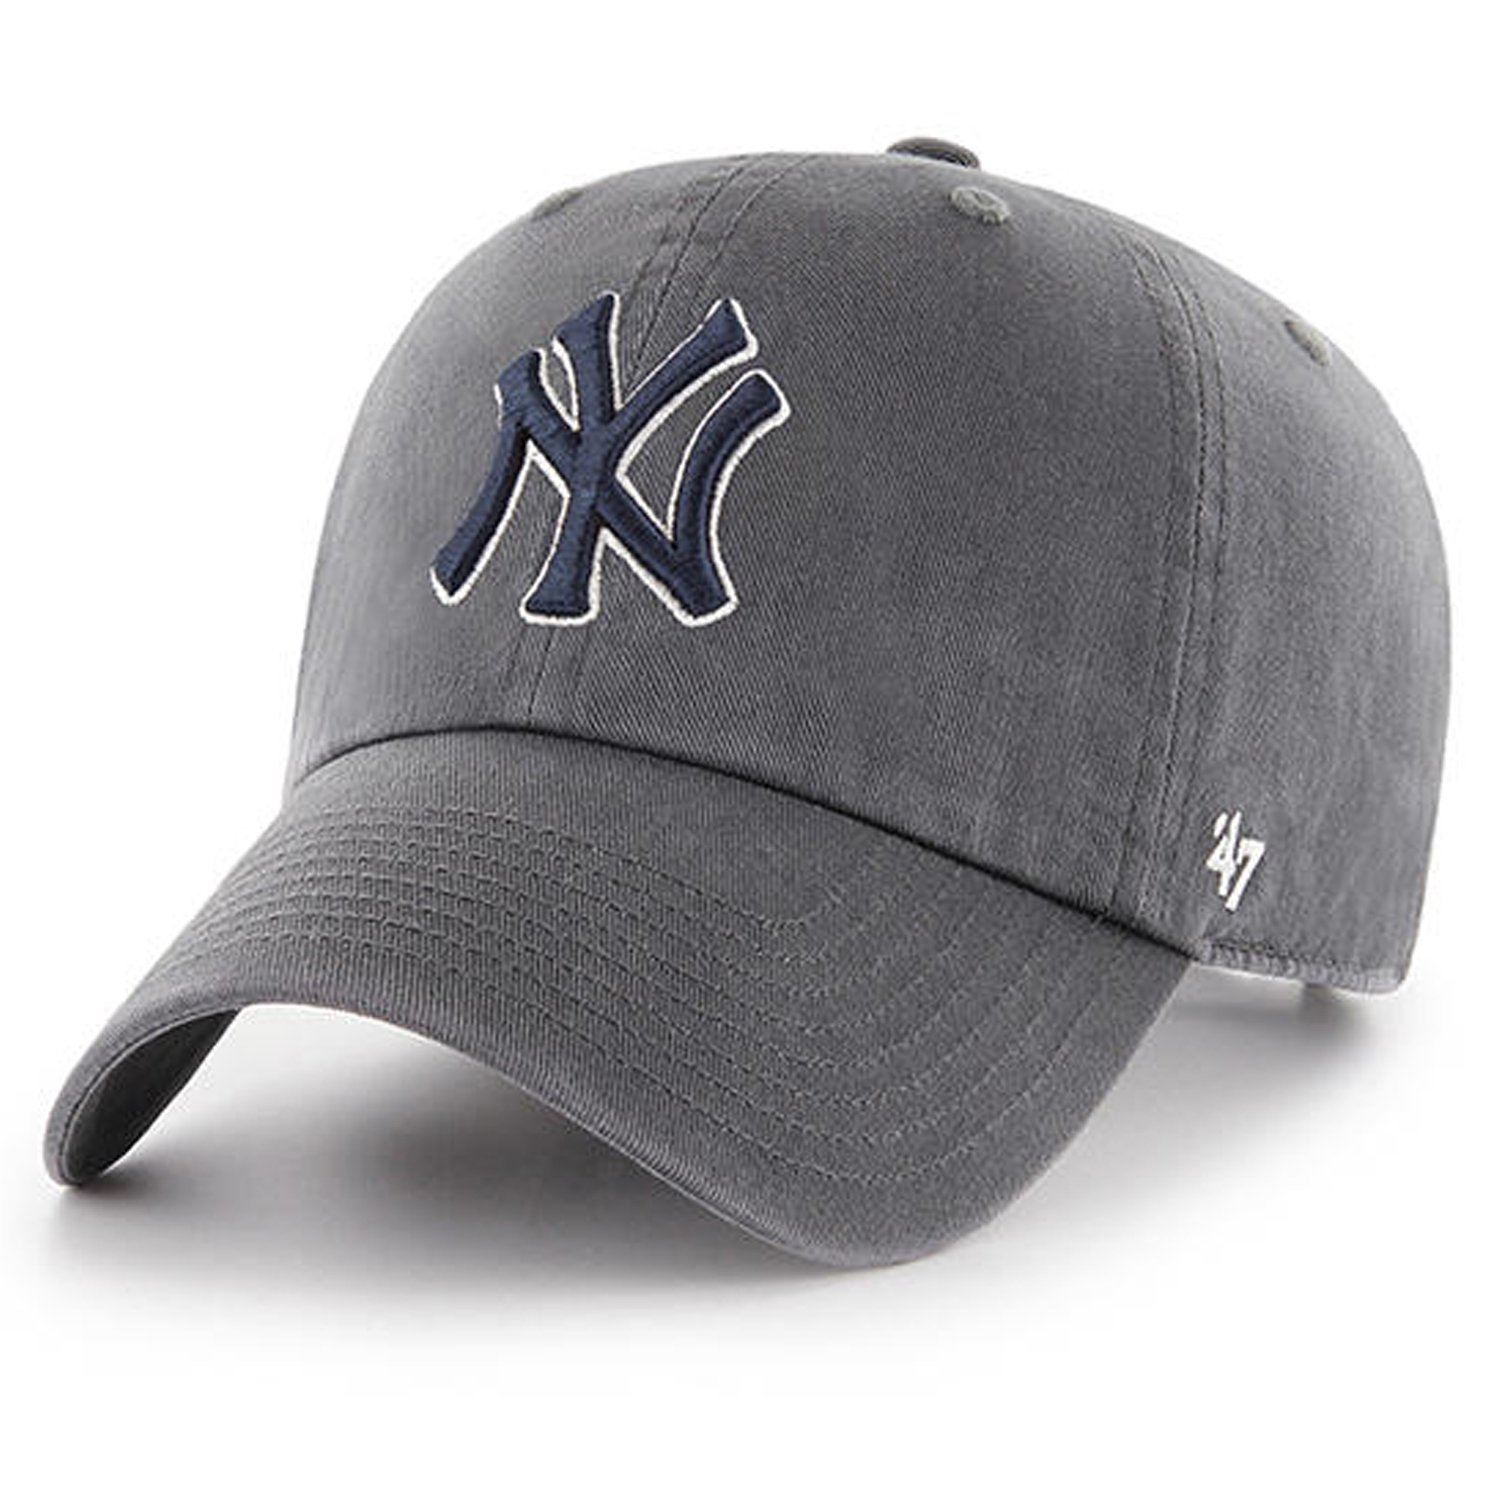 47 Brand MLB New York Yankees Clean Up Cap - Charcoal Gray